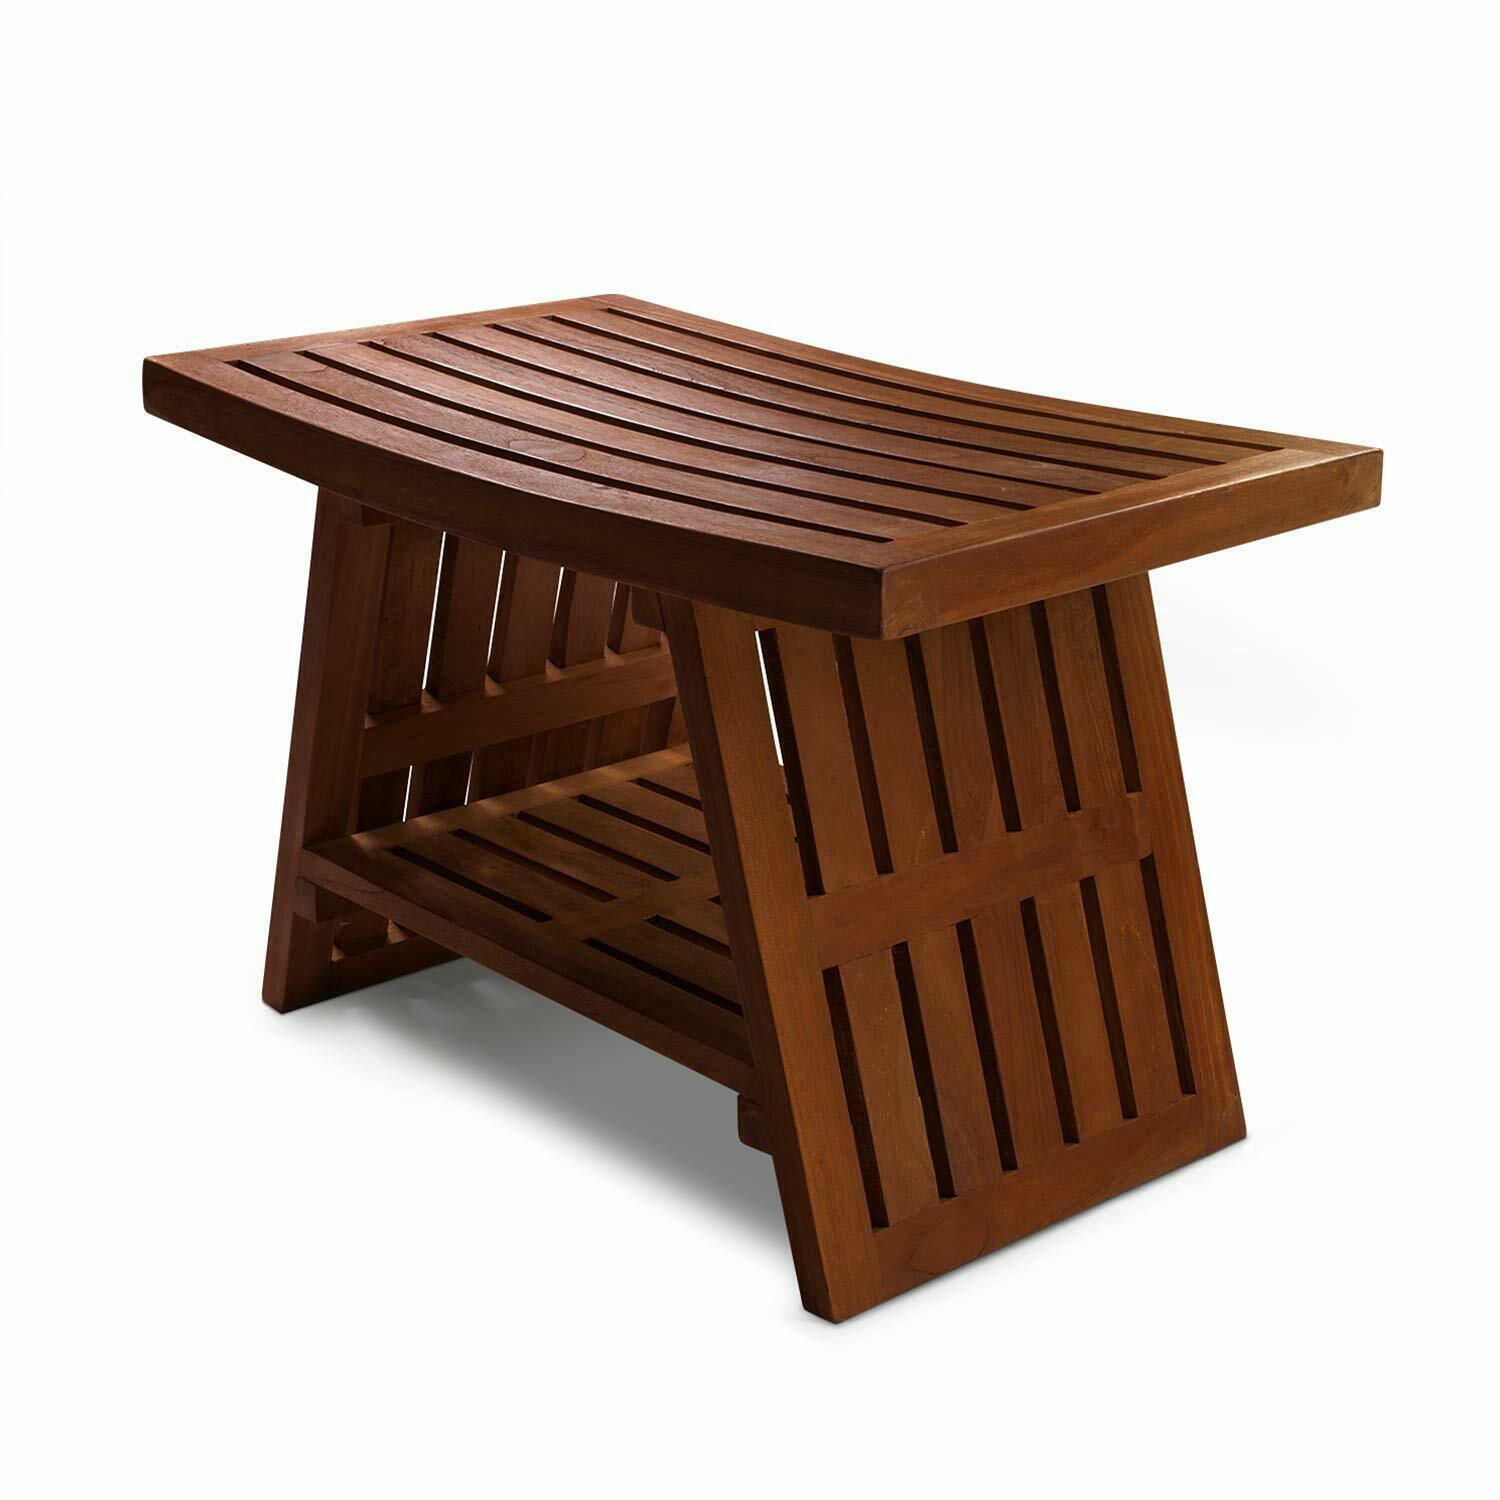 Hydroteak Hana Teak Wood Shower Bench W Shelf Bath Chair Spa Bathroom Assembled